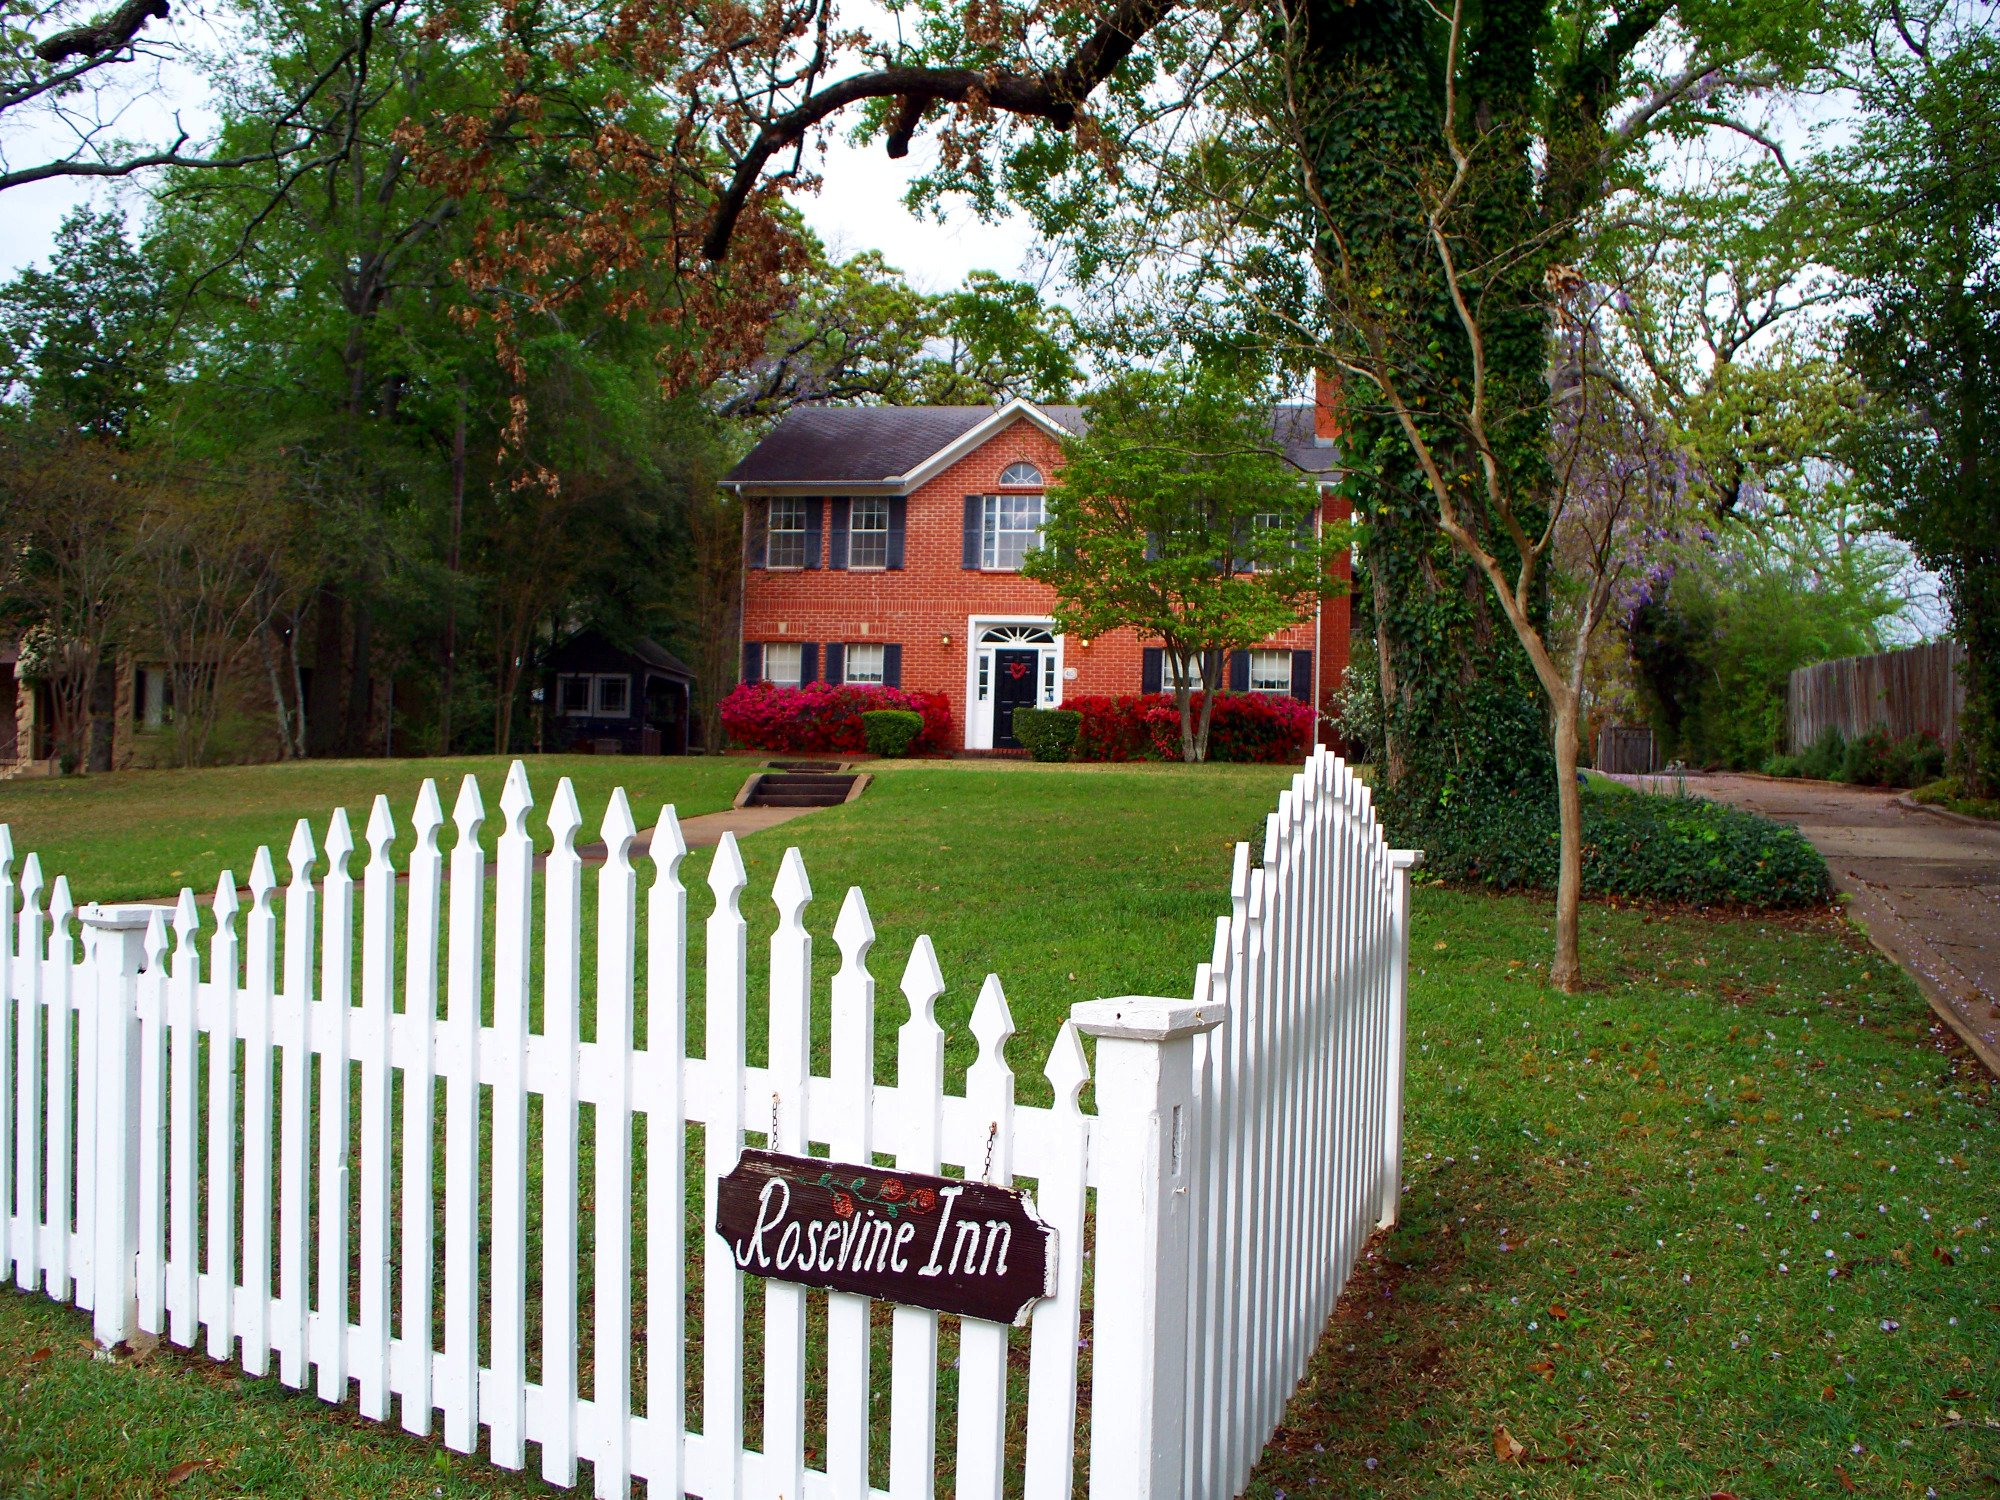 Rosevine Inn Bed & Breakfast and Extended Stay Lodging